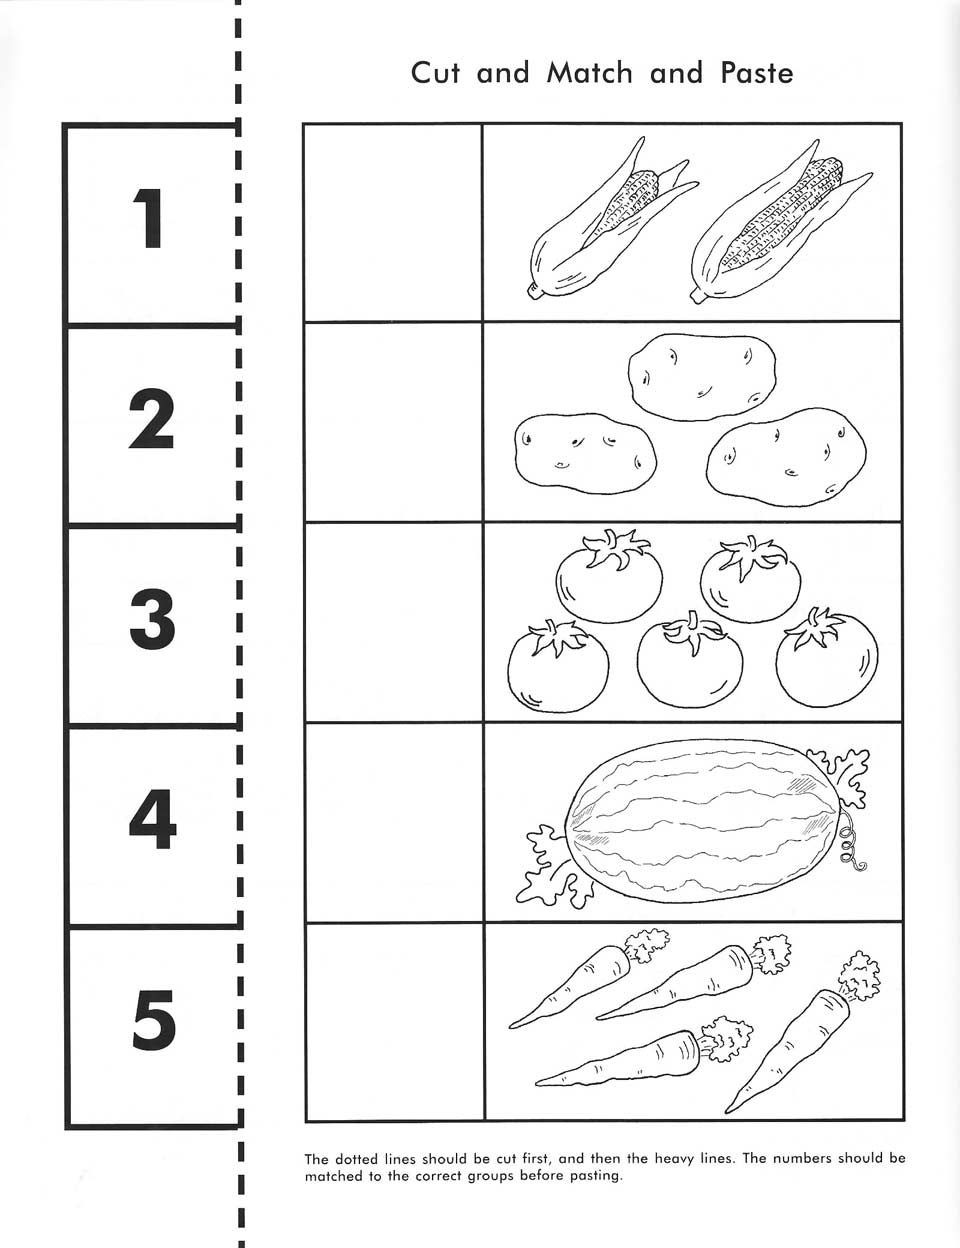 Cut and Paste Math Worksheets Rod & Staff Preschool Workbooks